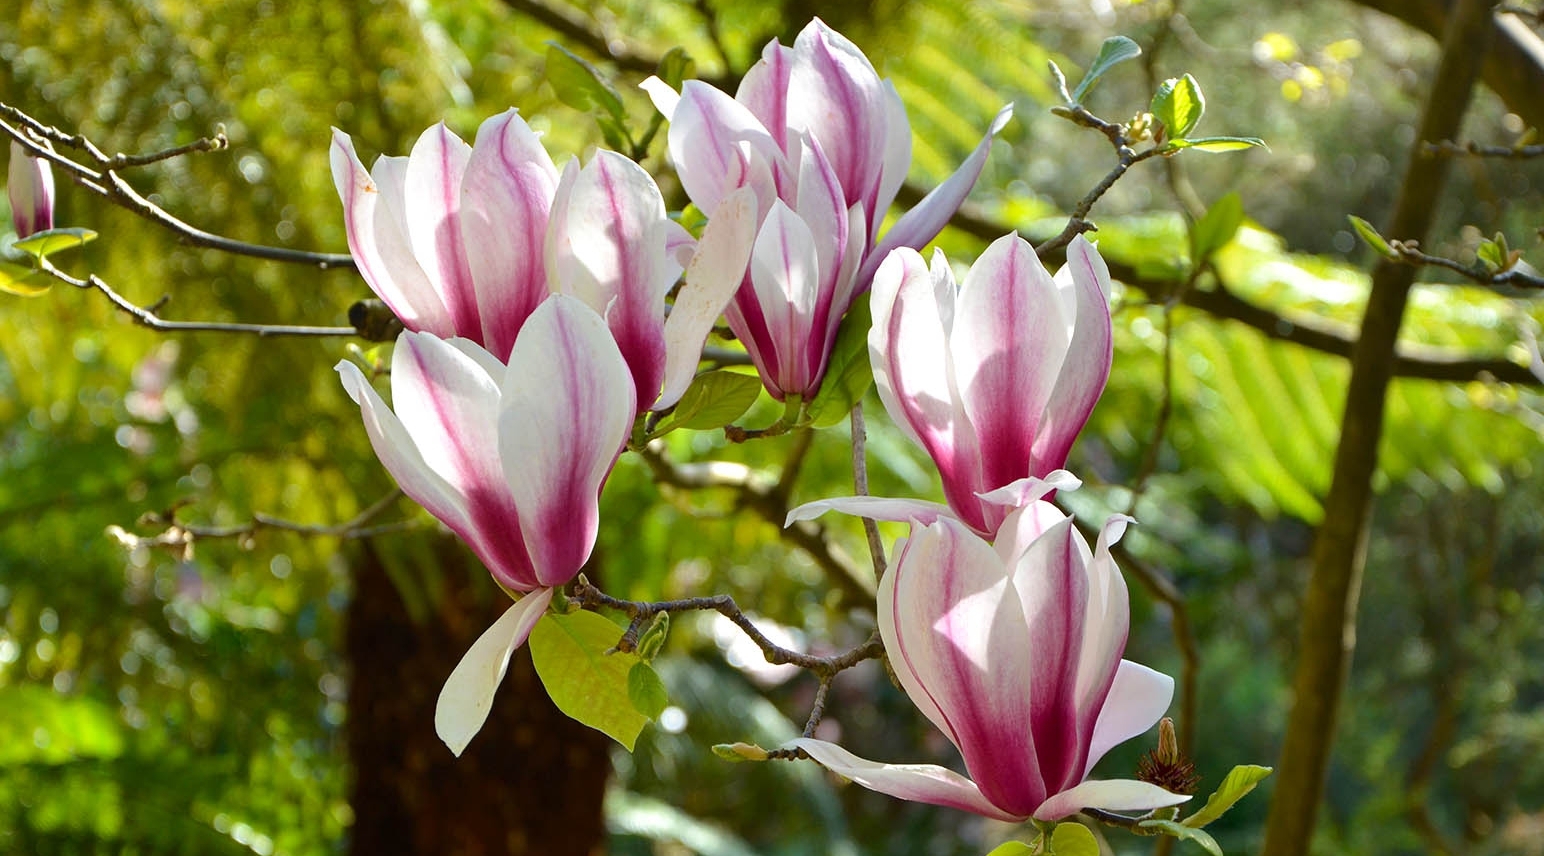 Flowers of Magnolia x soulangeana in early spring